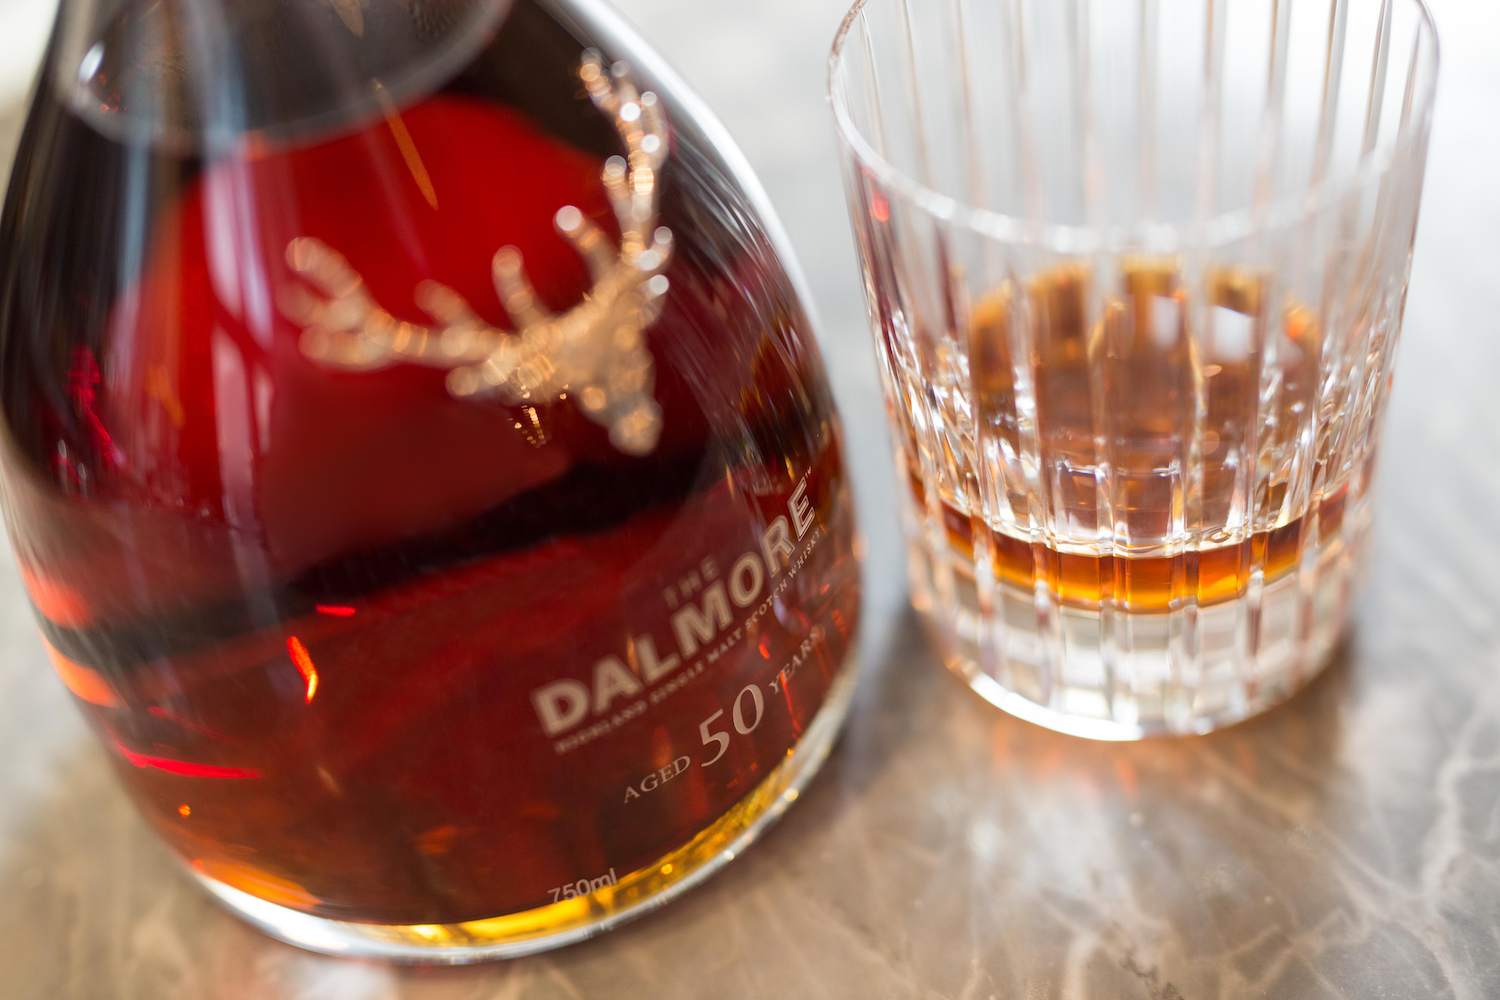 the dalmore 50 years old whisky